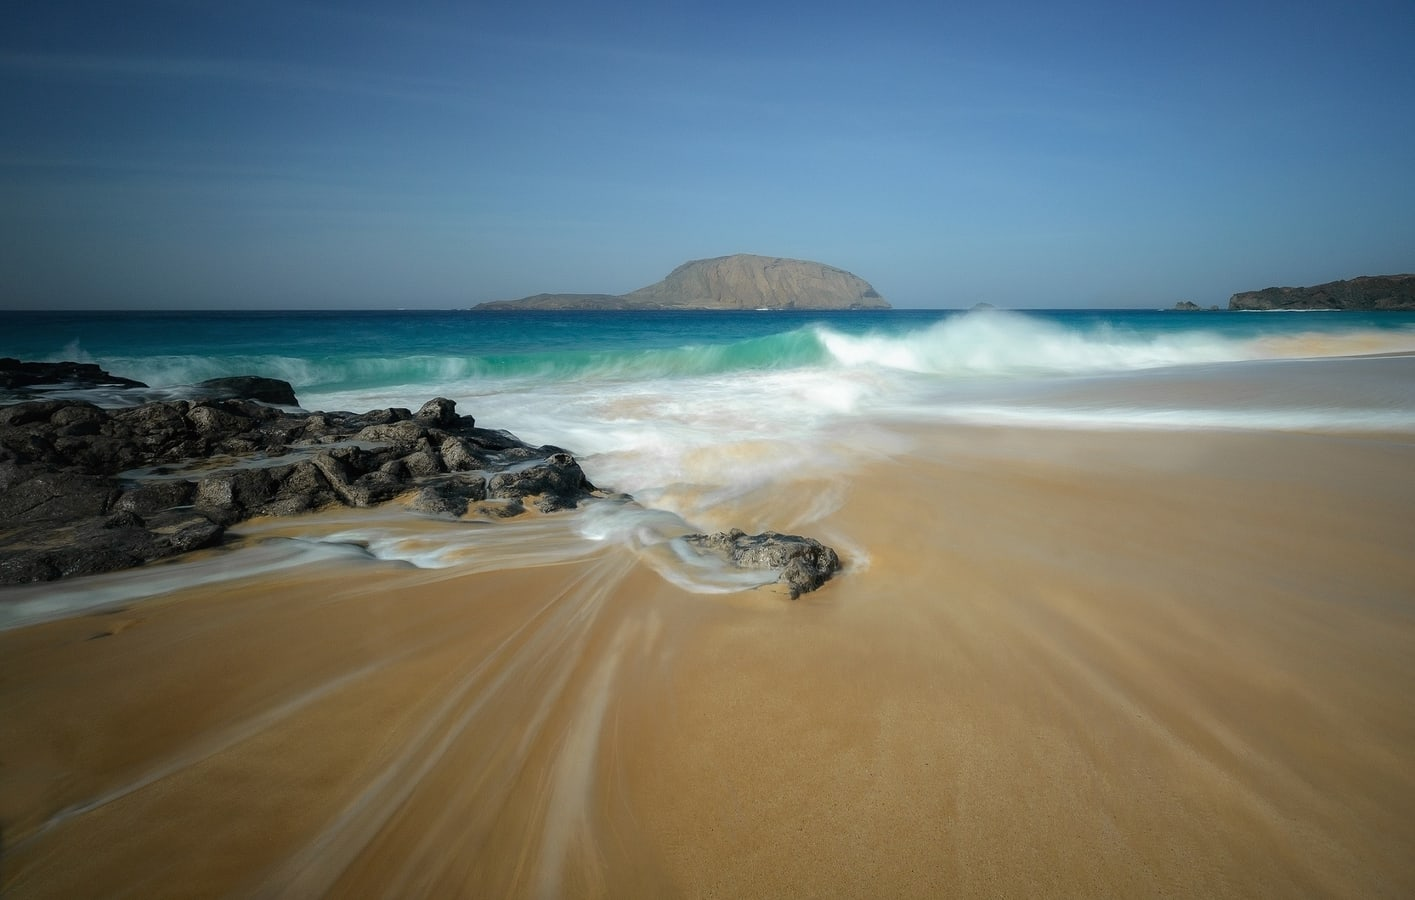 La Conchas beach, a beach to visit in La Graciosa